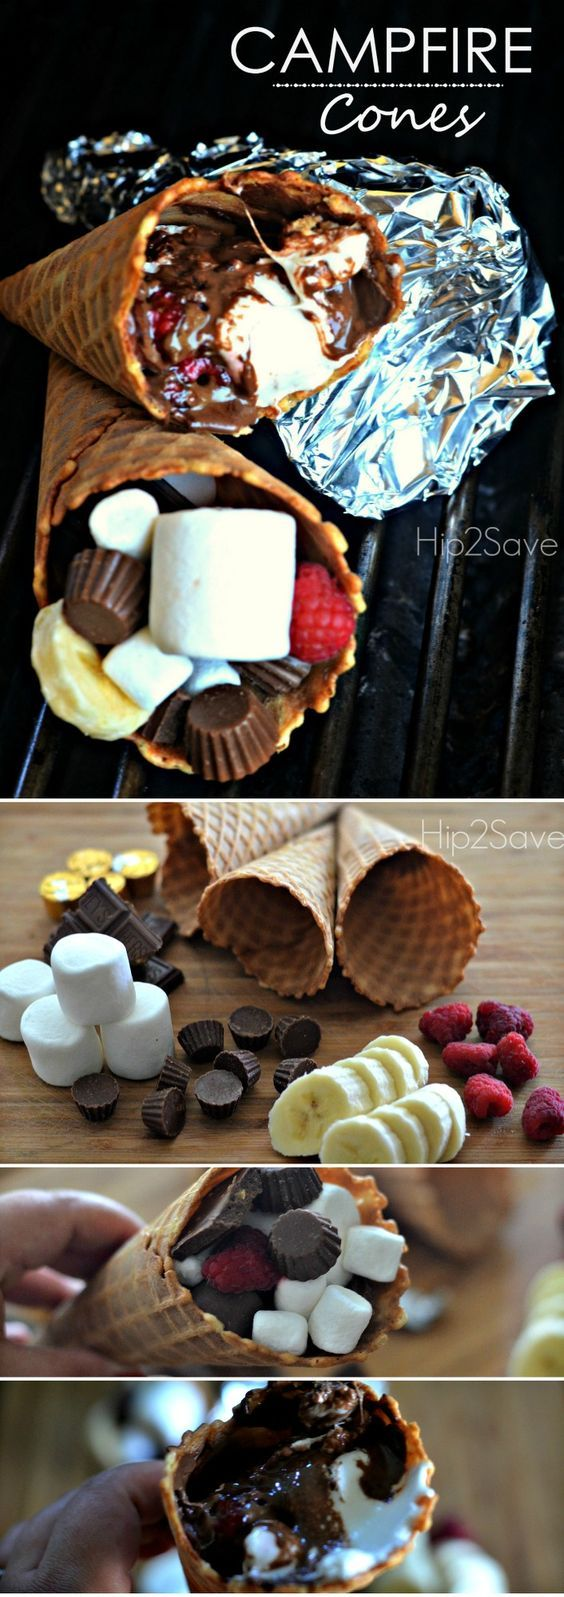 Campfire Cones with stunning toppings!